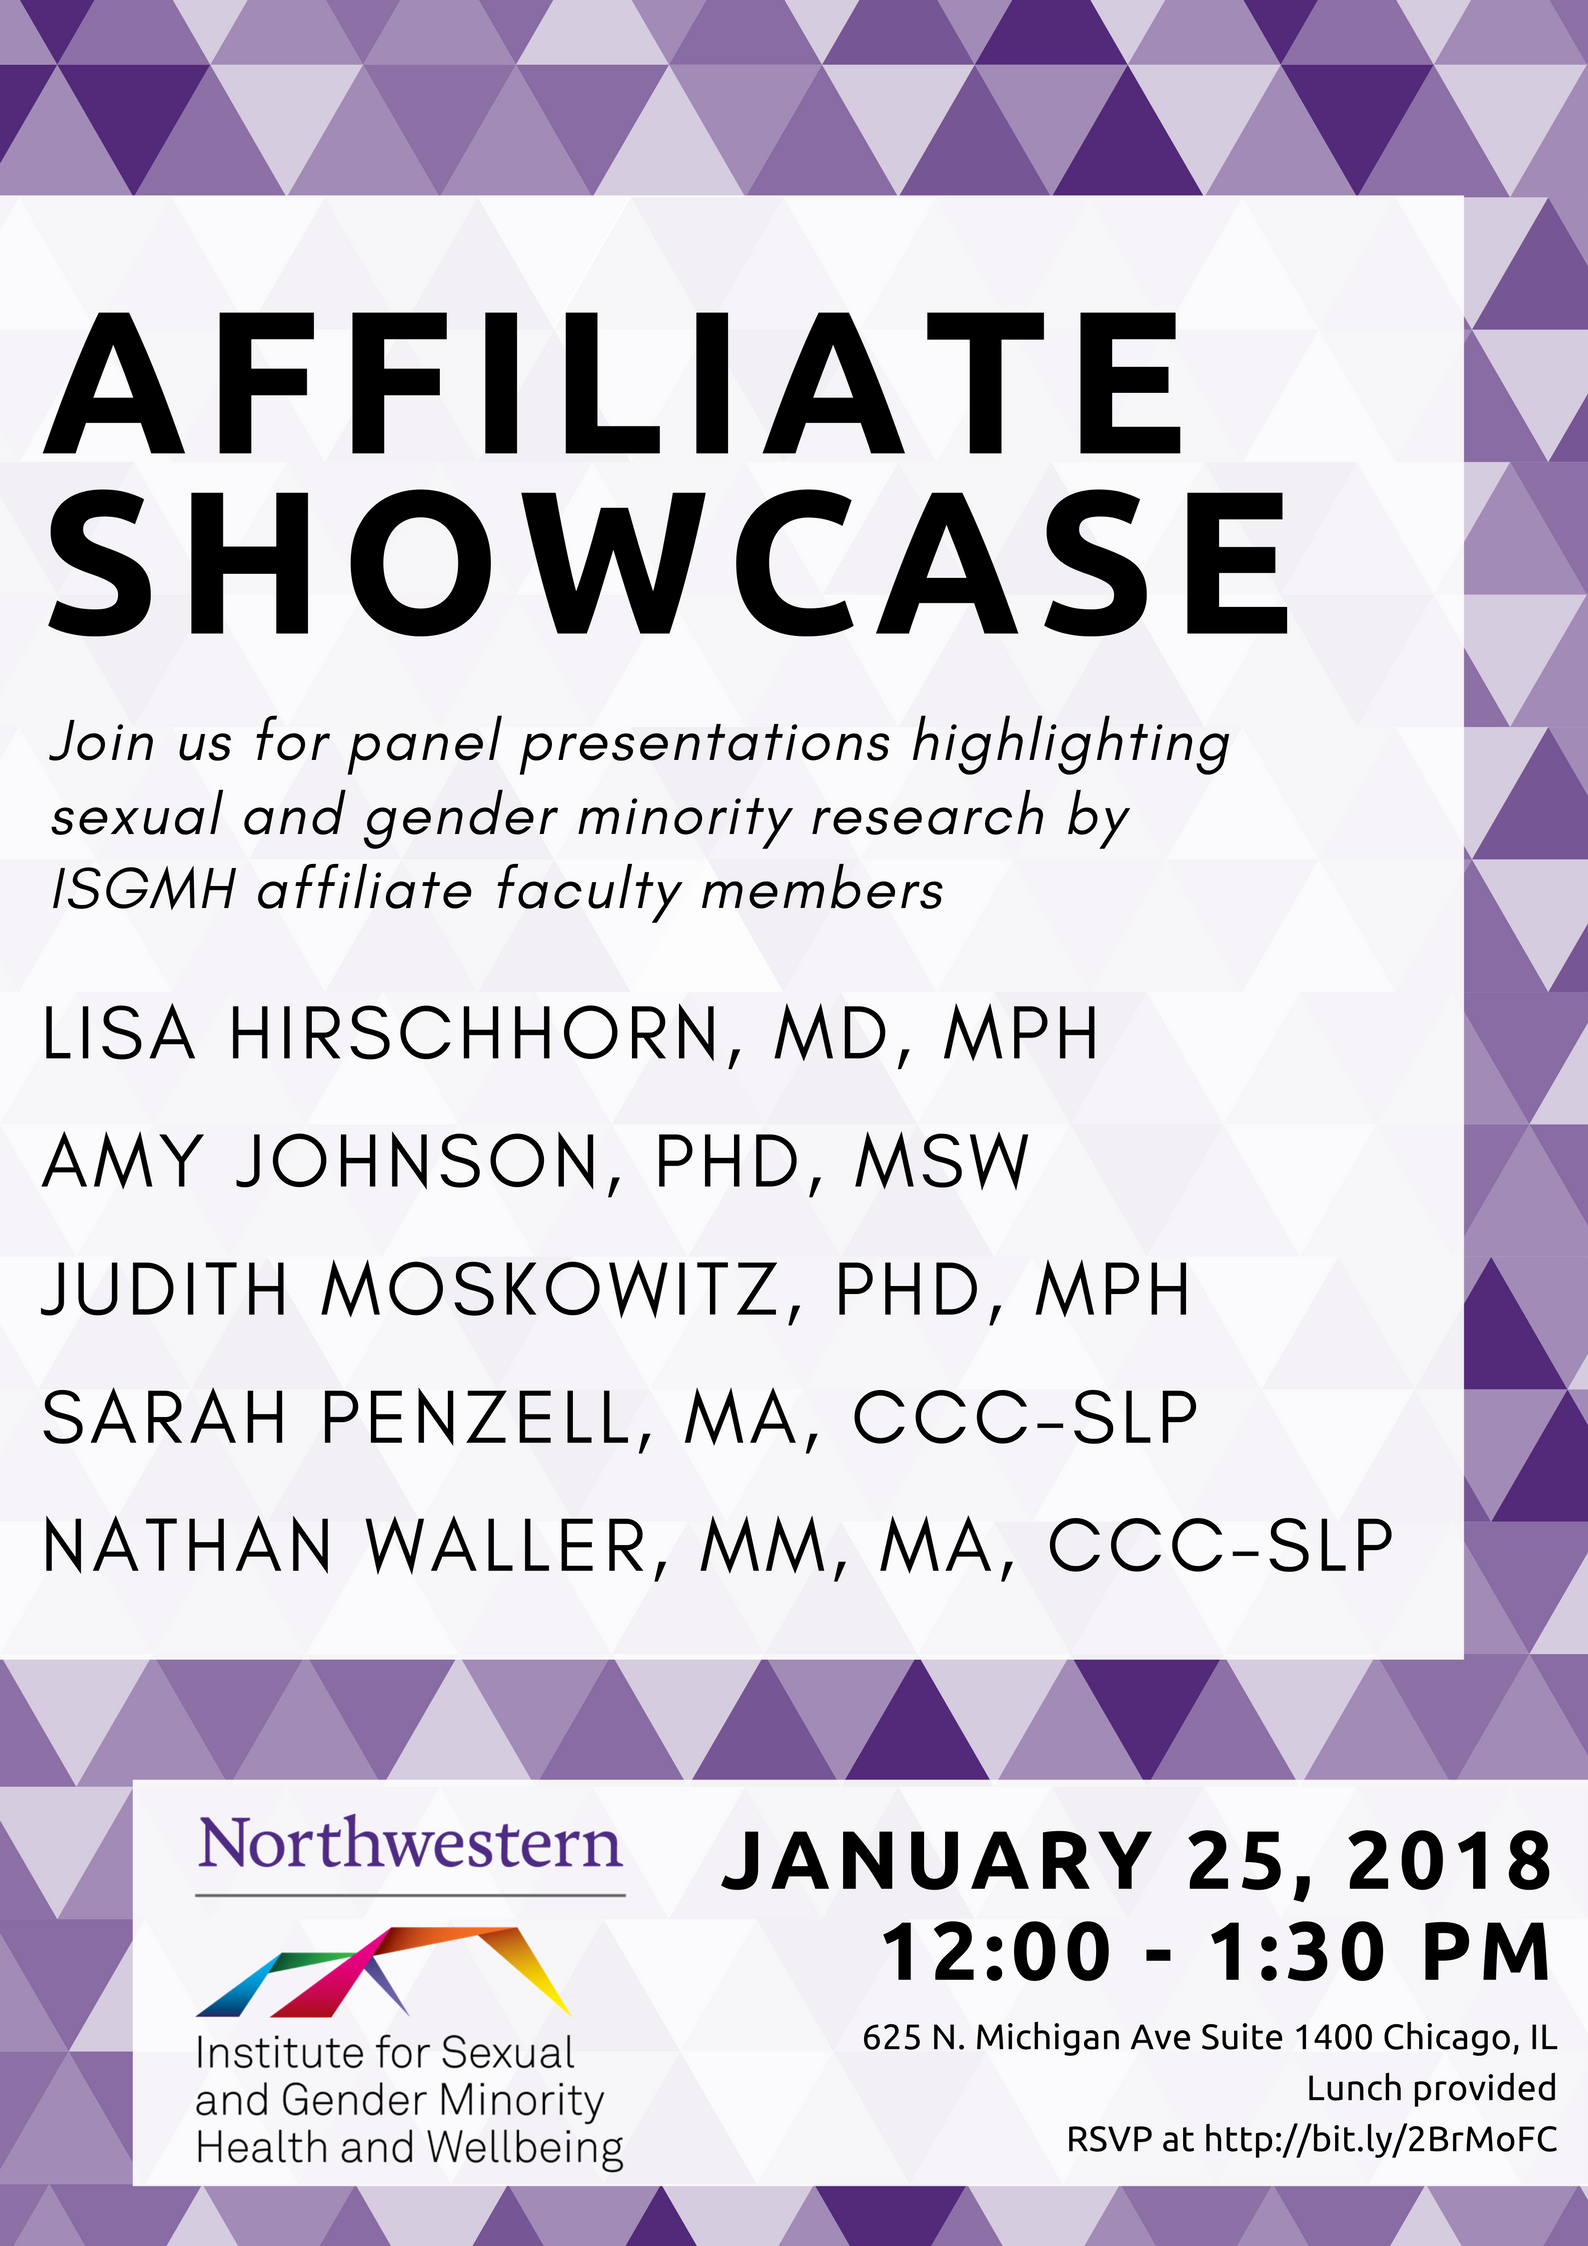 ISGMH Affiliate Showcase flier